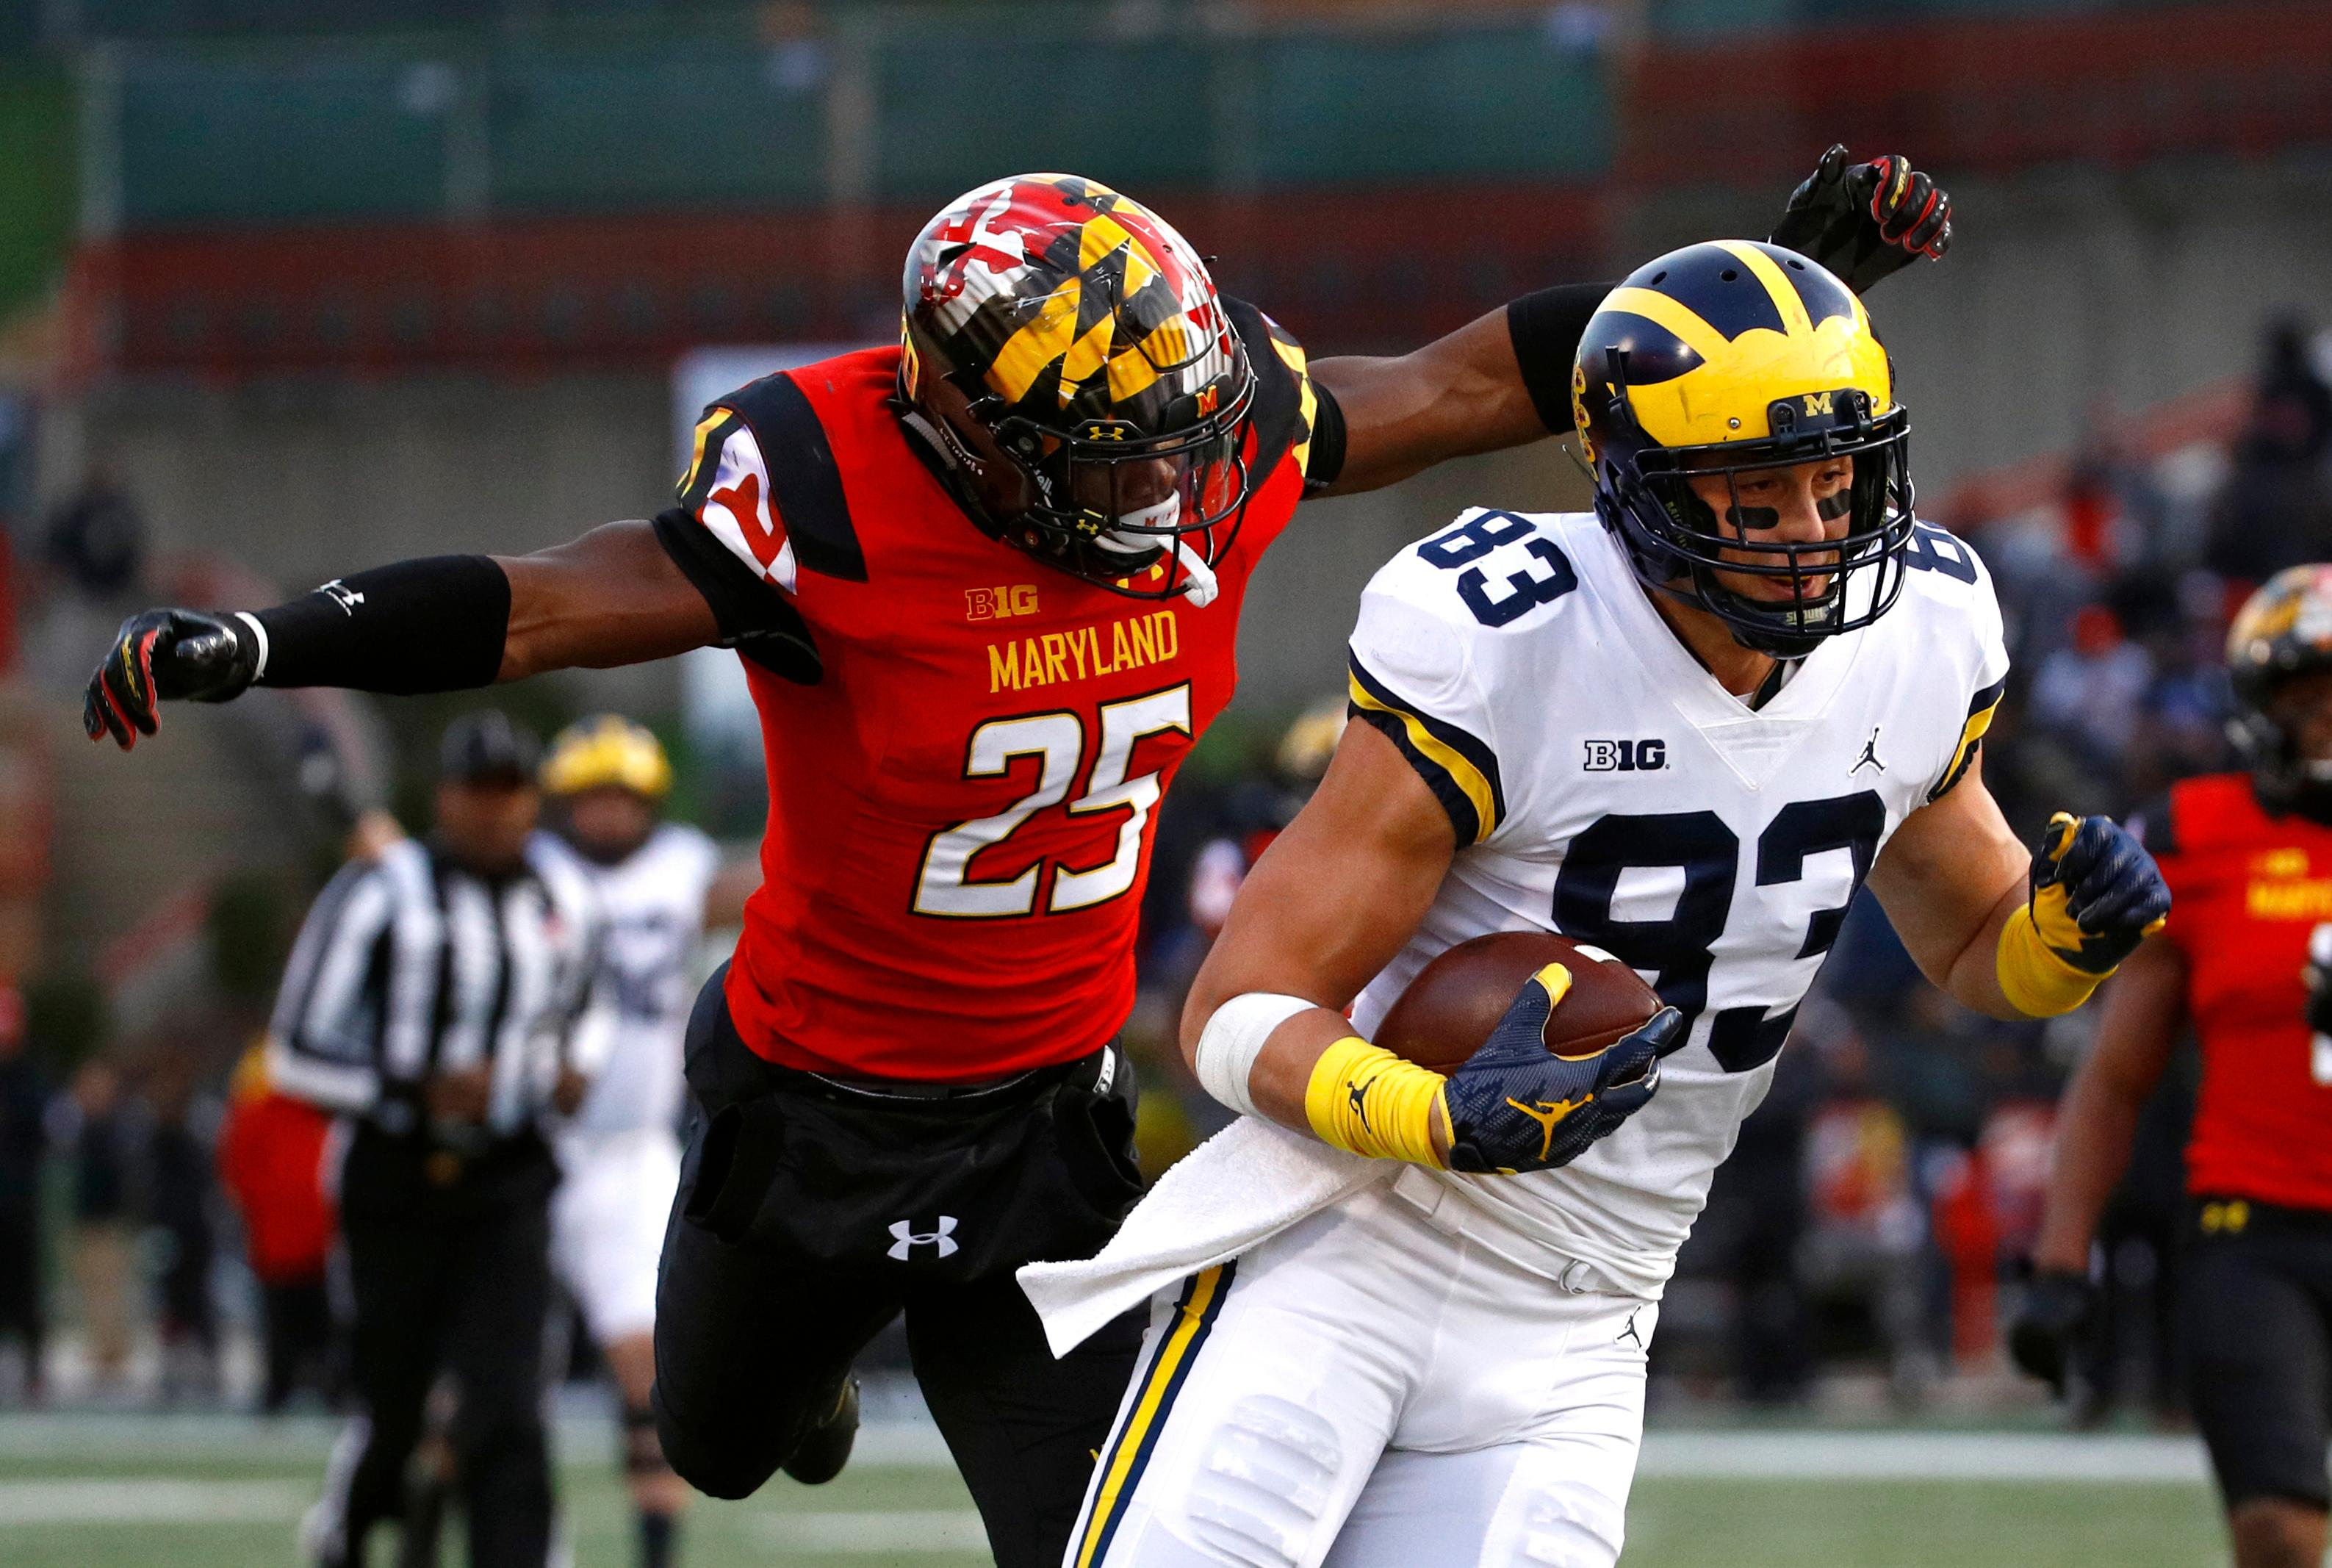 Michigan tight end Zach Gentry, right, rushes past Maryland defensive back Antoine Brooks Jr. for a touchdown in the first half of an NCAA college football game in College Park, Md., Saturday, Nov. 11, 2017. (AP Photo/Patrick Semansky)